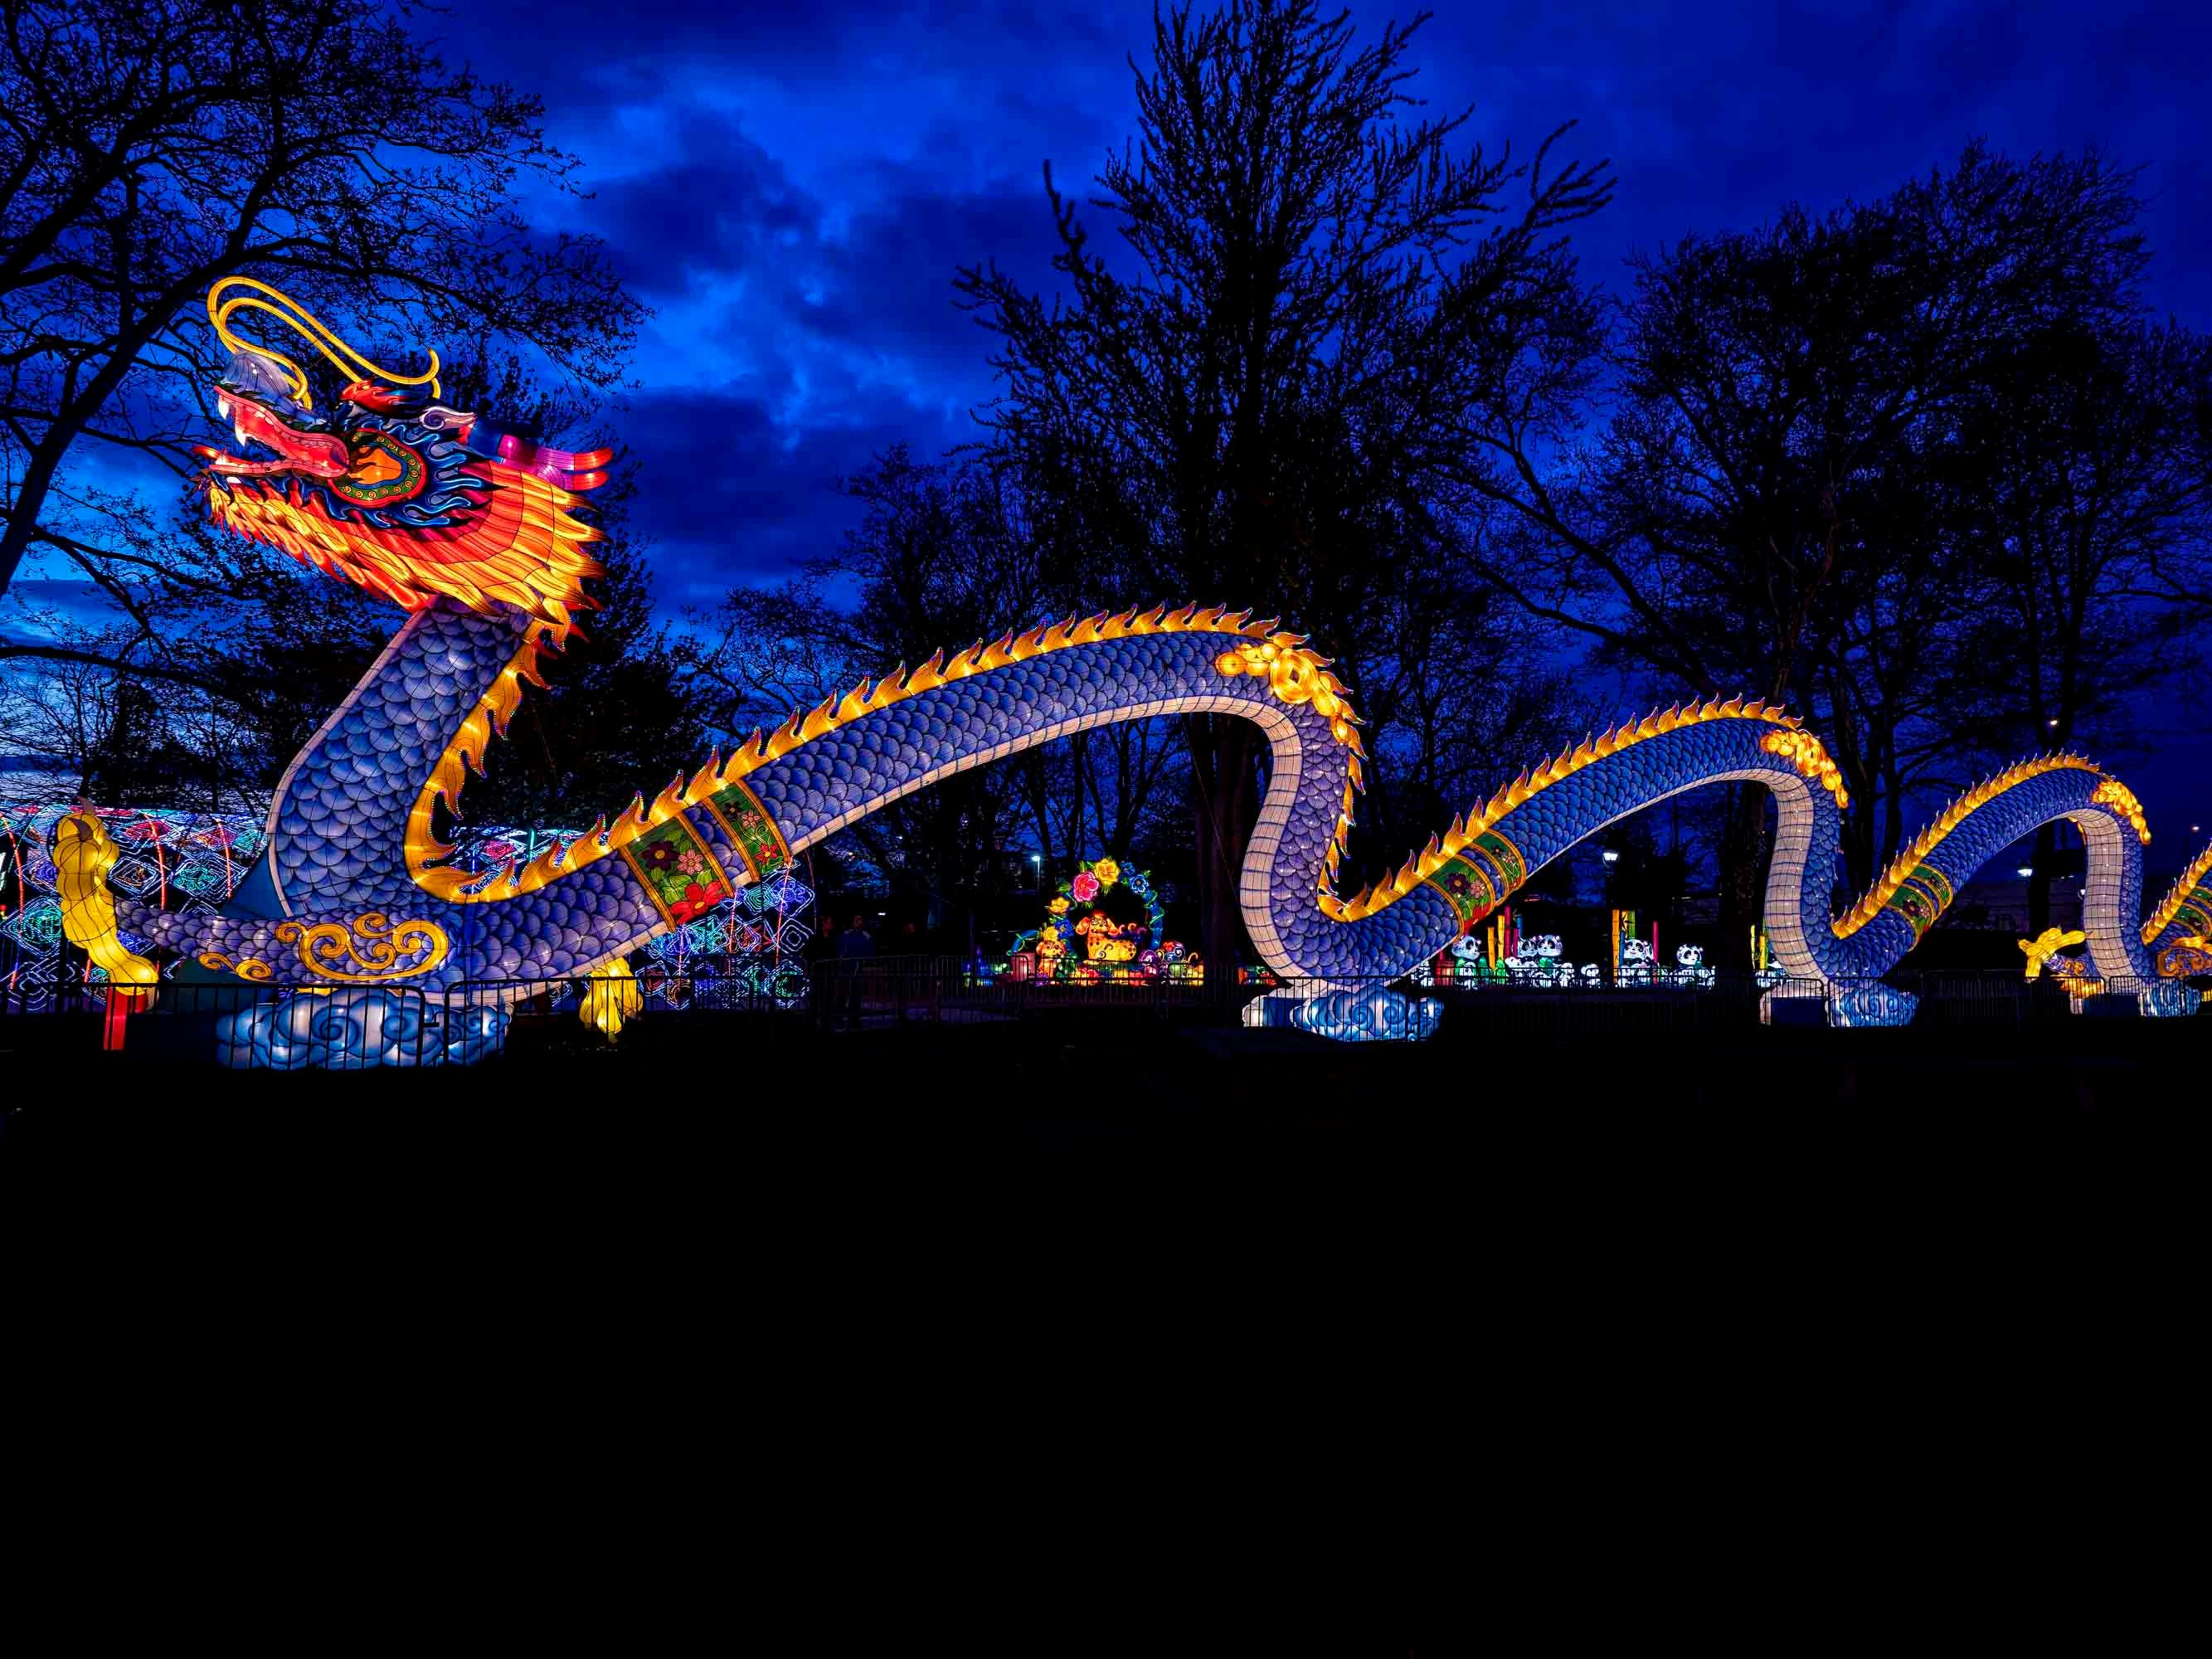 Dragon Lights Albuquerque, a Chinese cultural festival, will feature an enormous 40-foot-long dragon lantern.